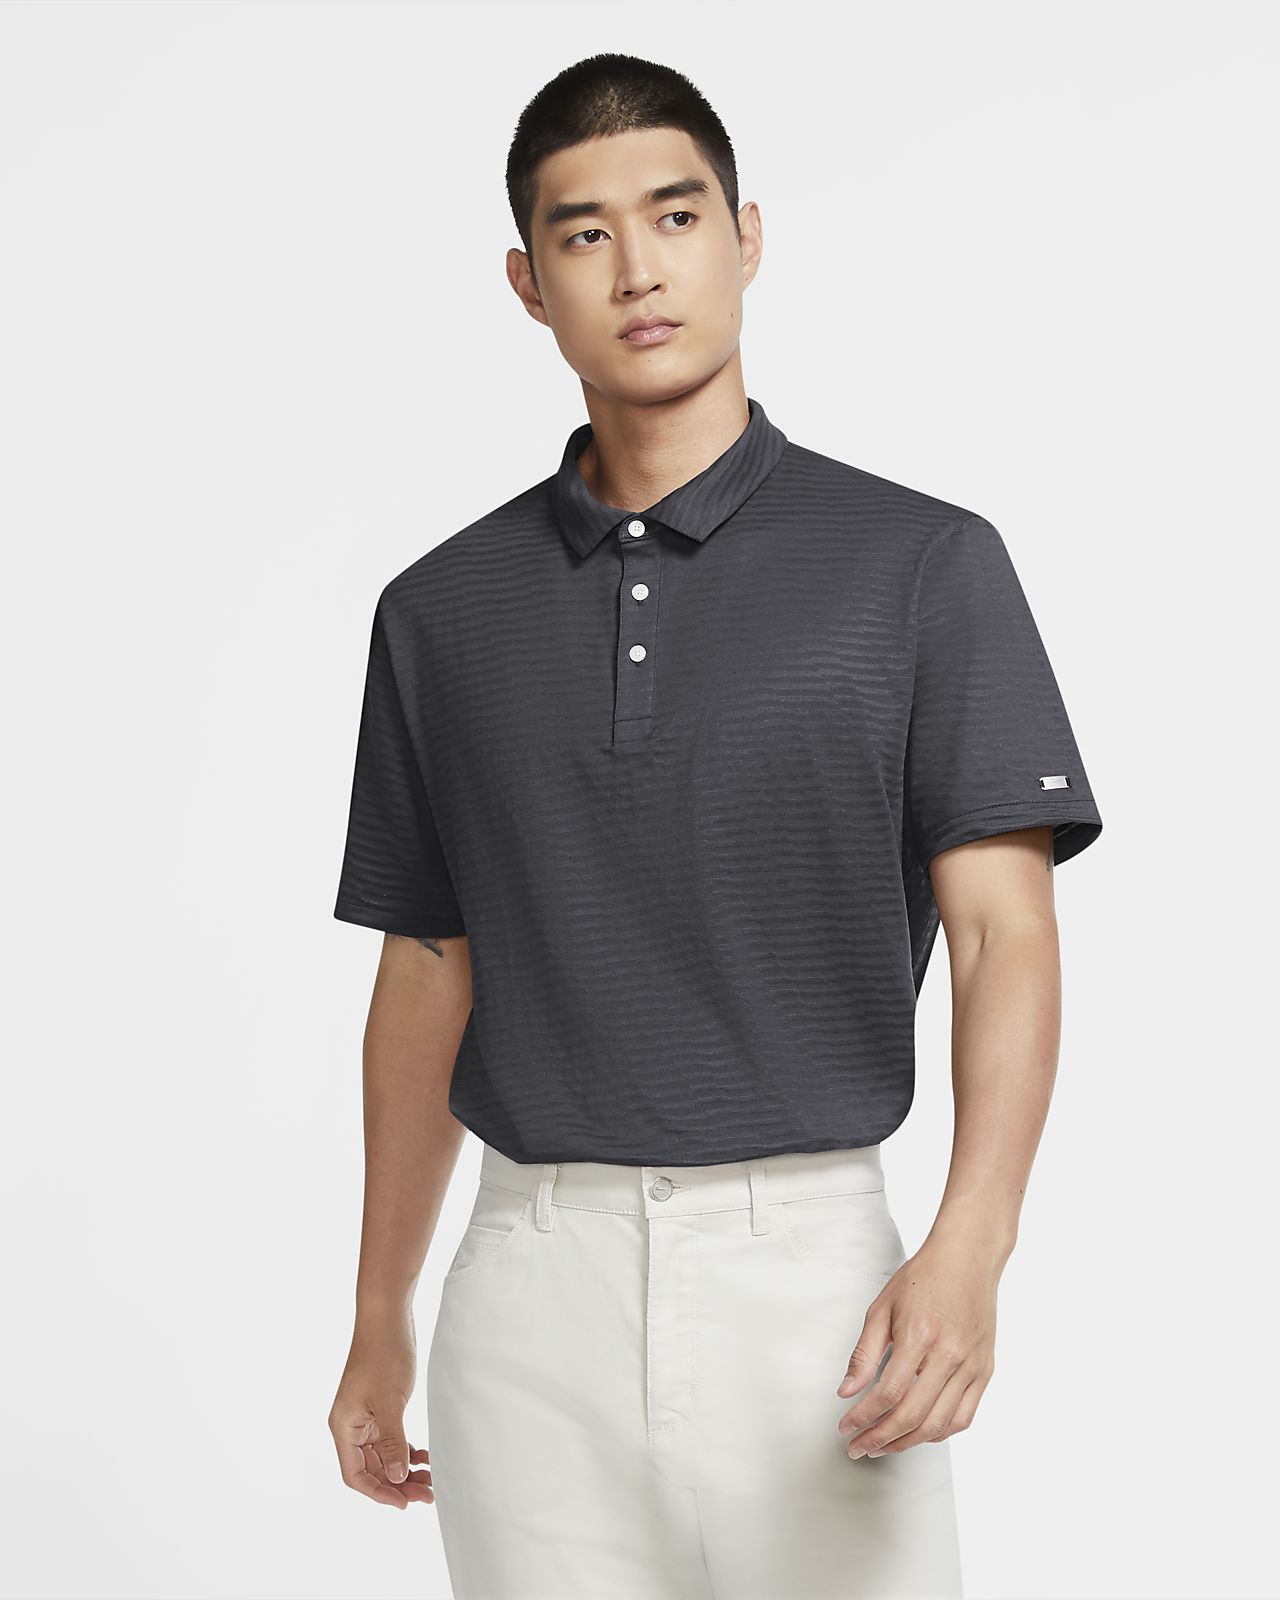 Nike Dri-FIT Player Erkek Golf Polo Üst